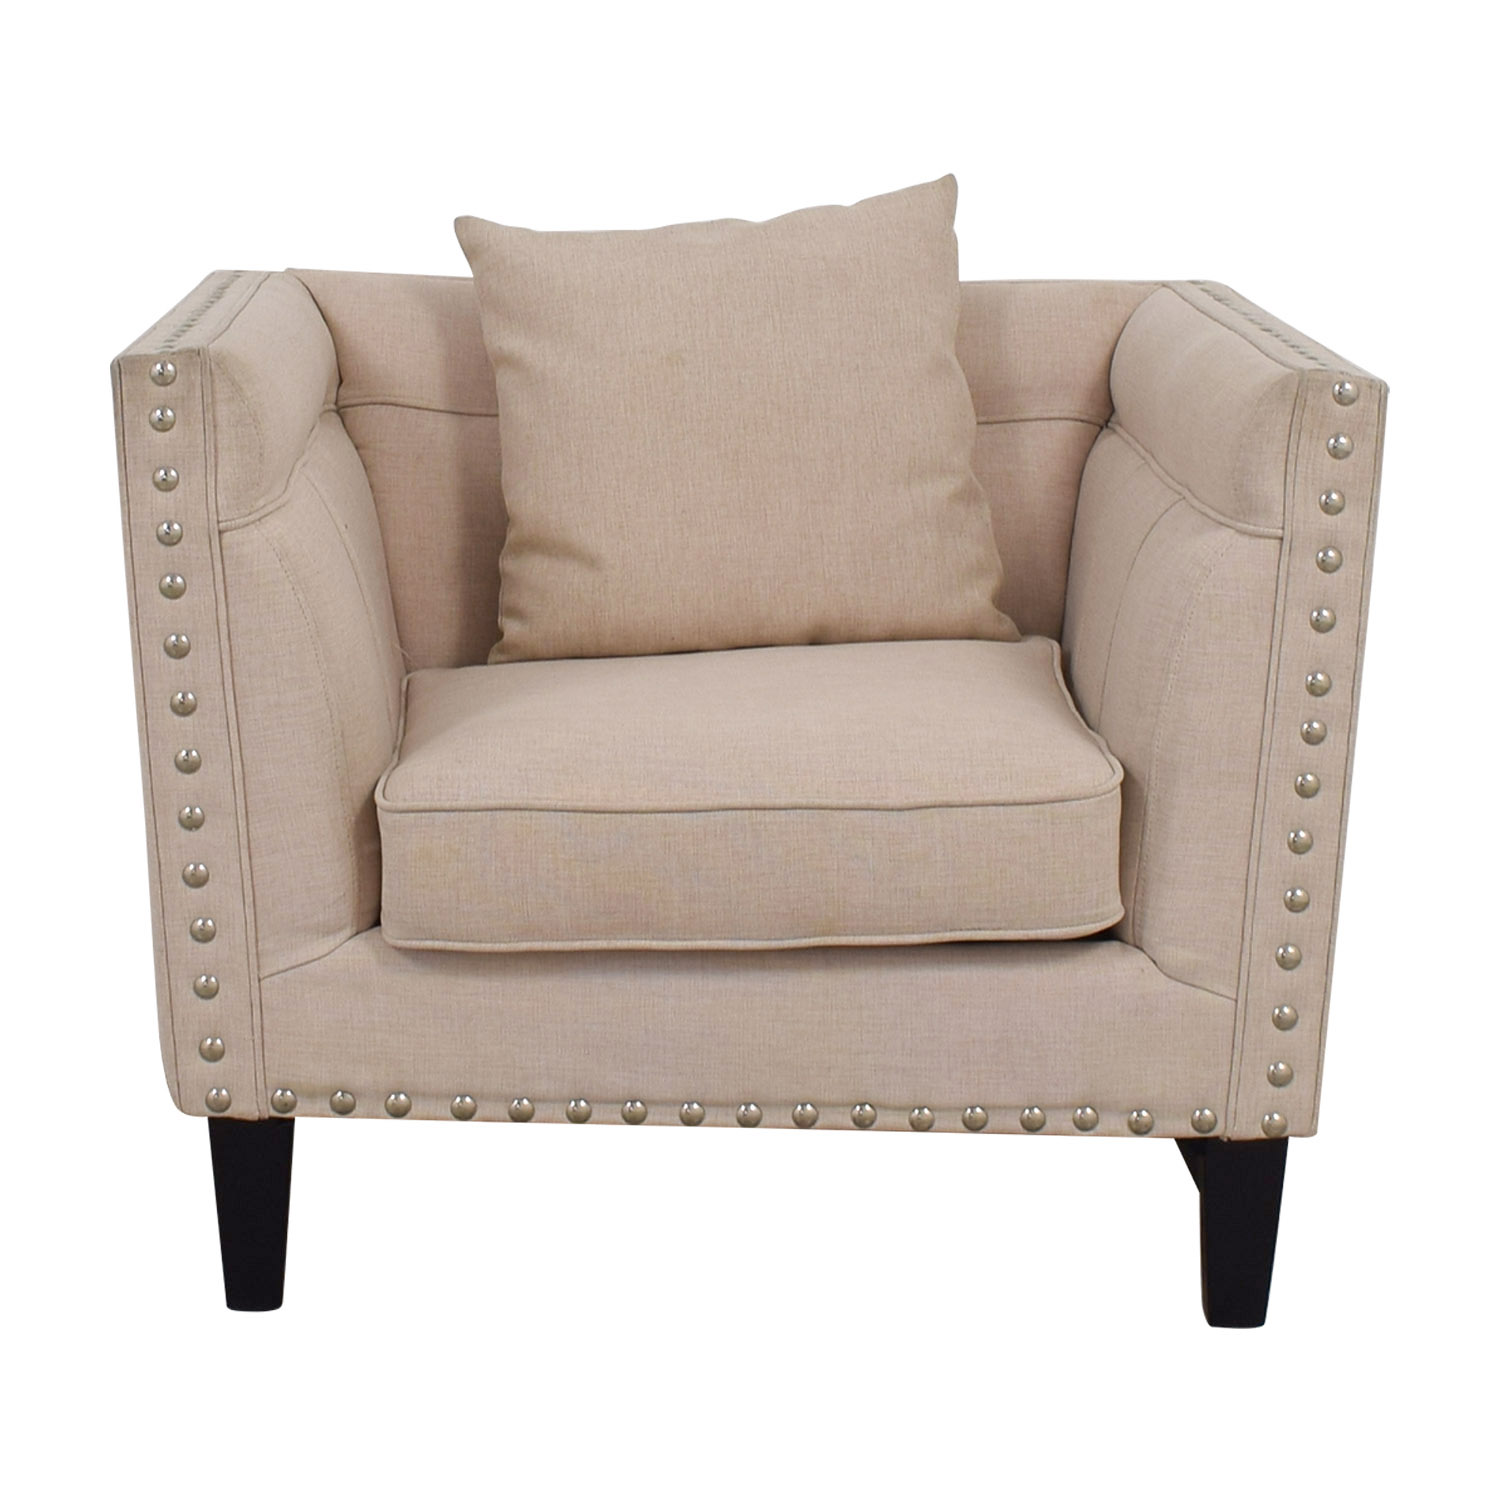 House of Hampton Beige Nailhead Square Upholstered Armchair House of Hampton